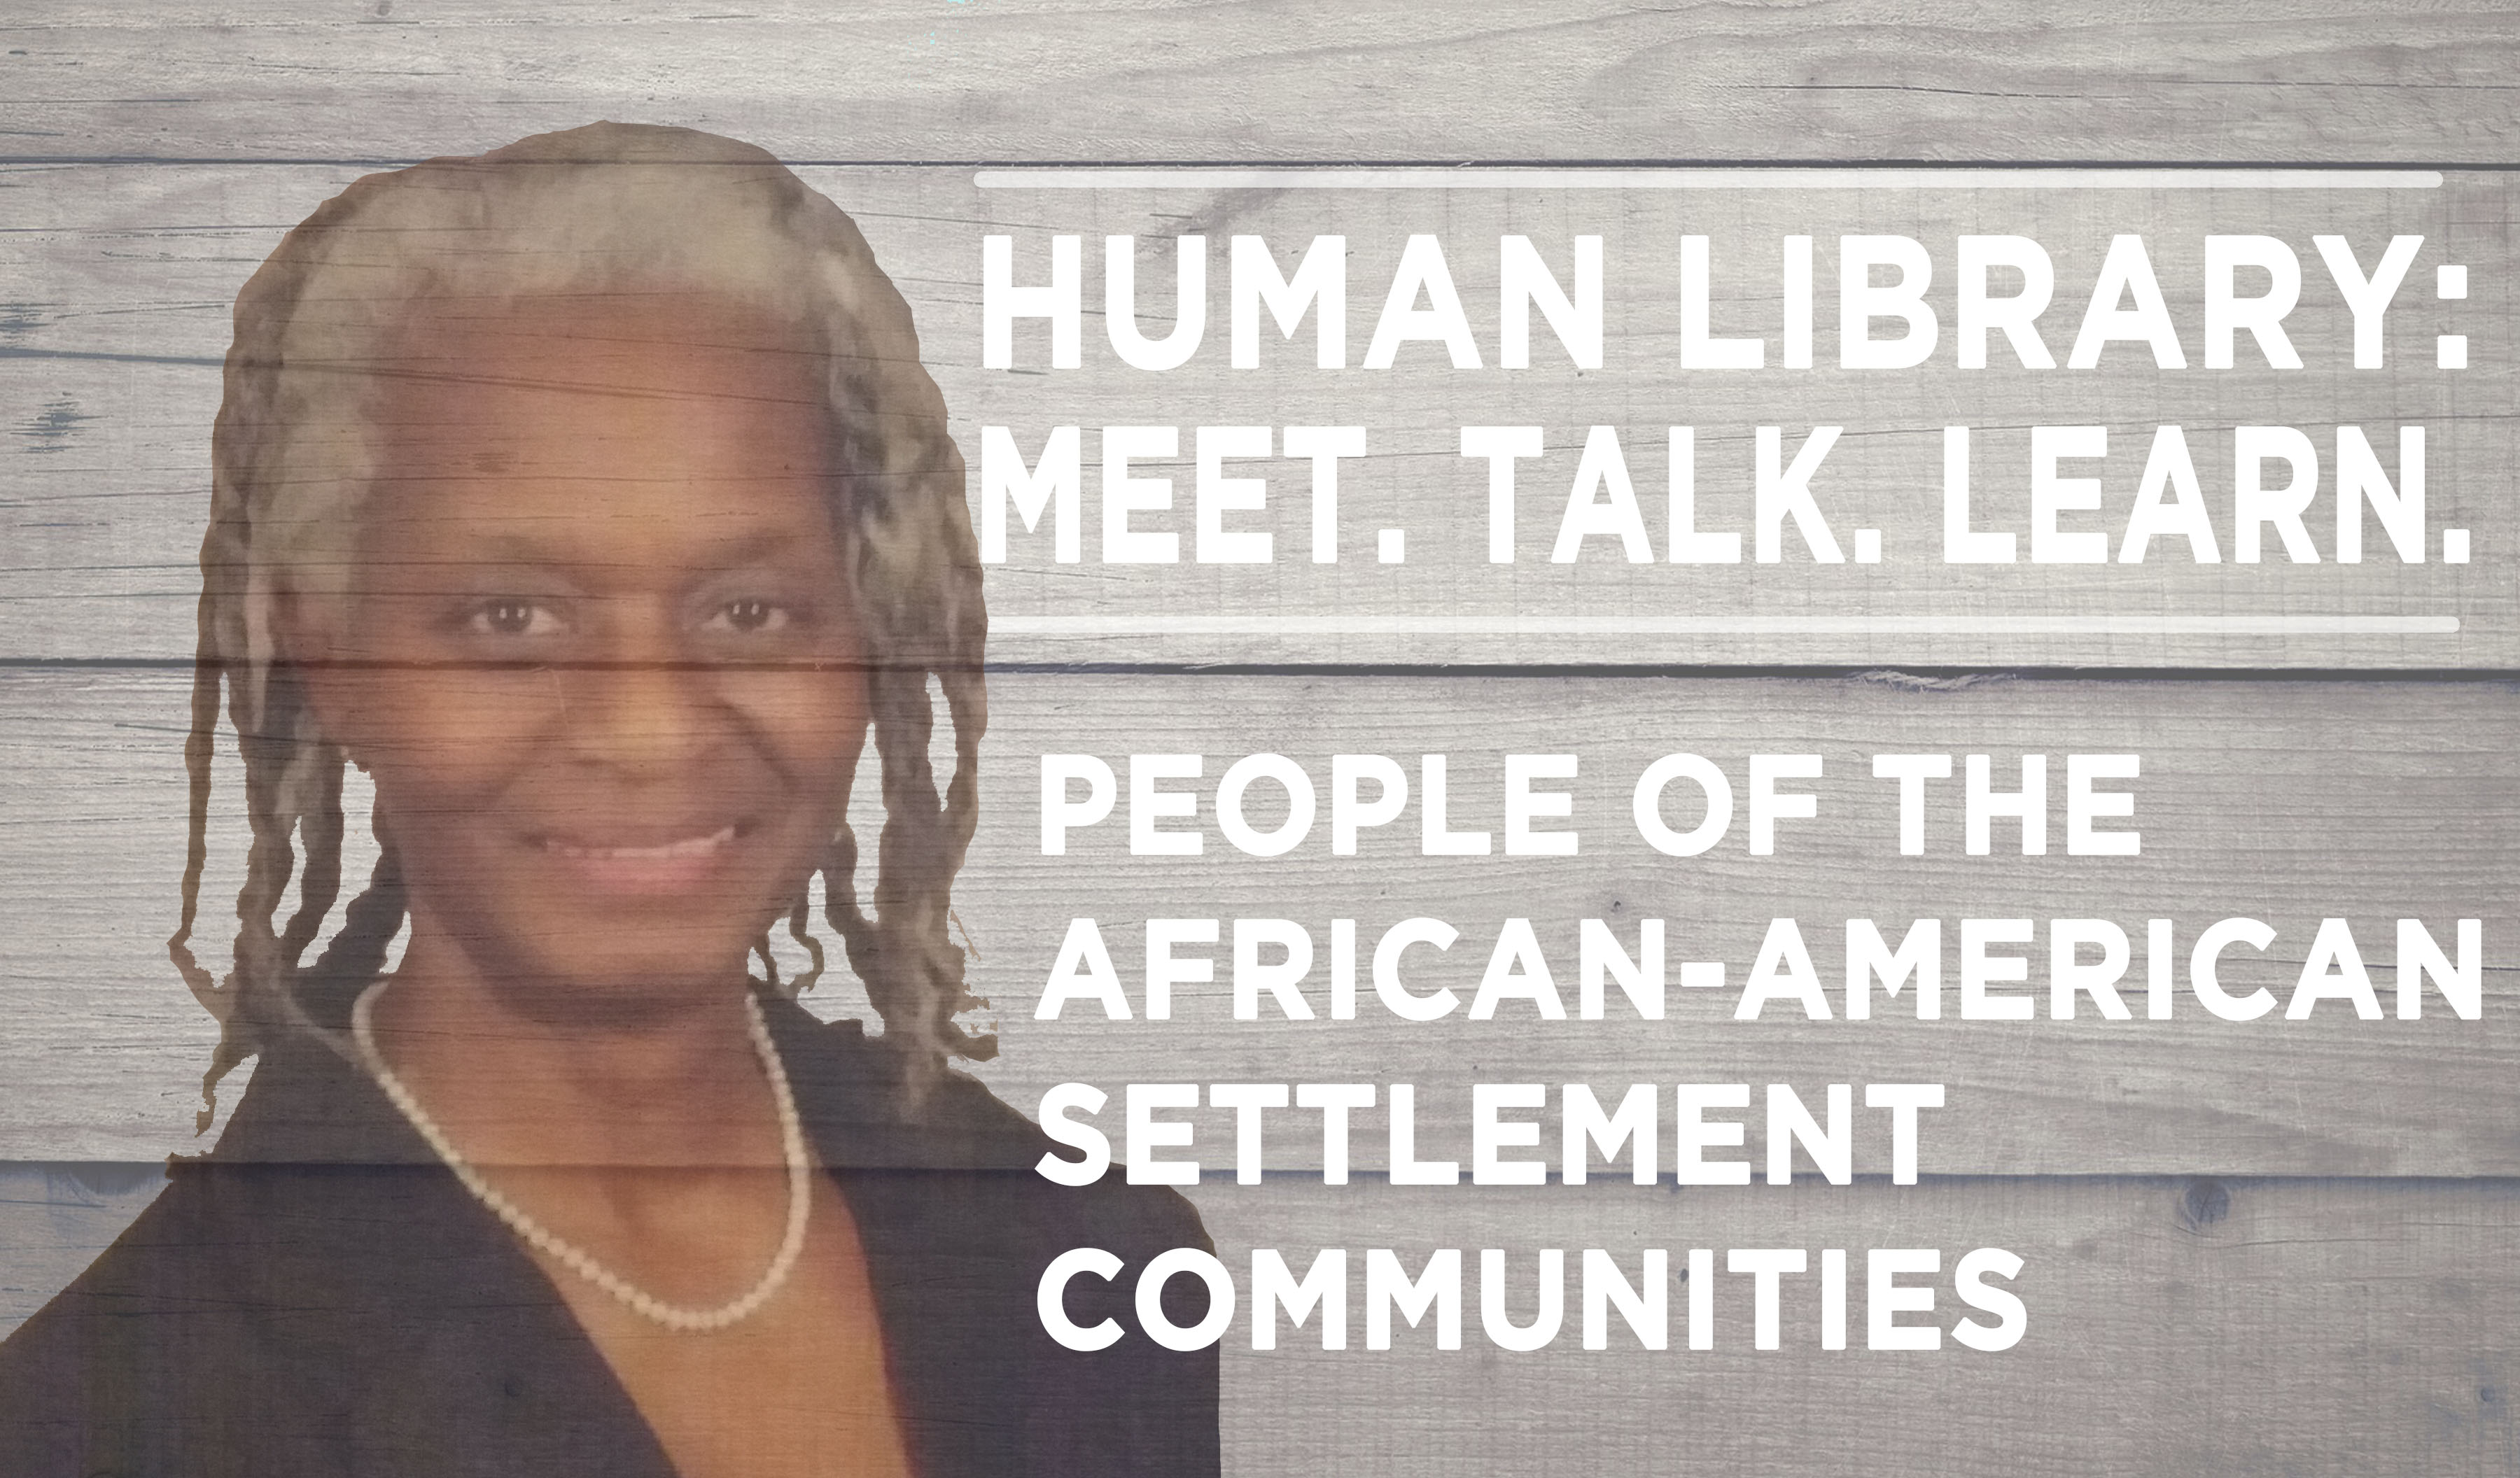 Human Library Logo - African Am Settlement Communities